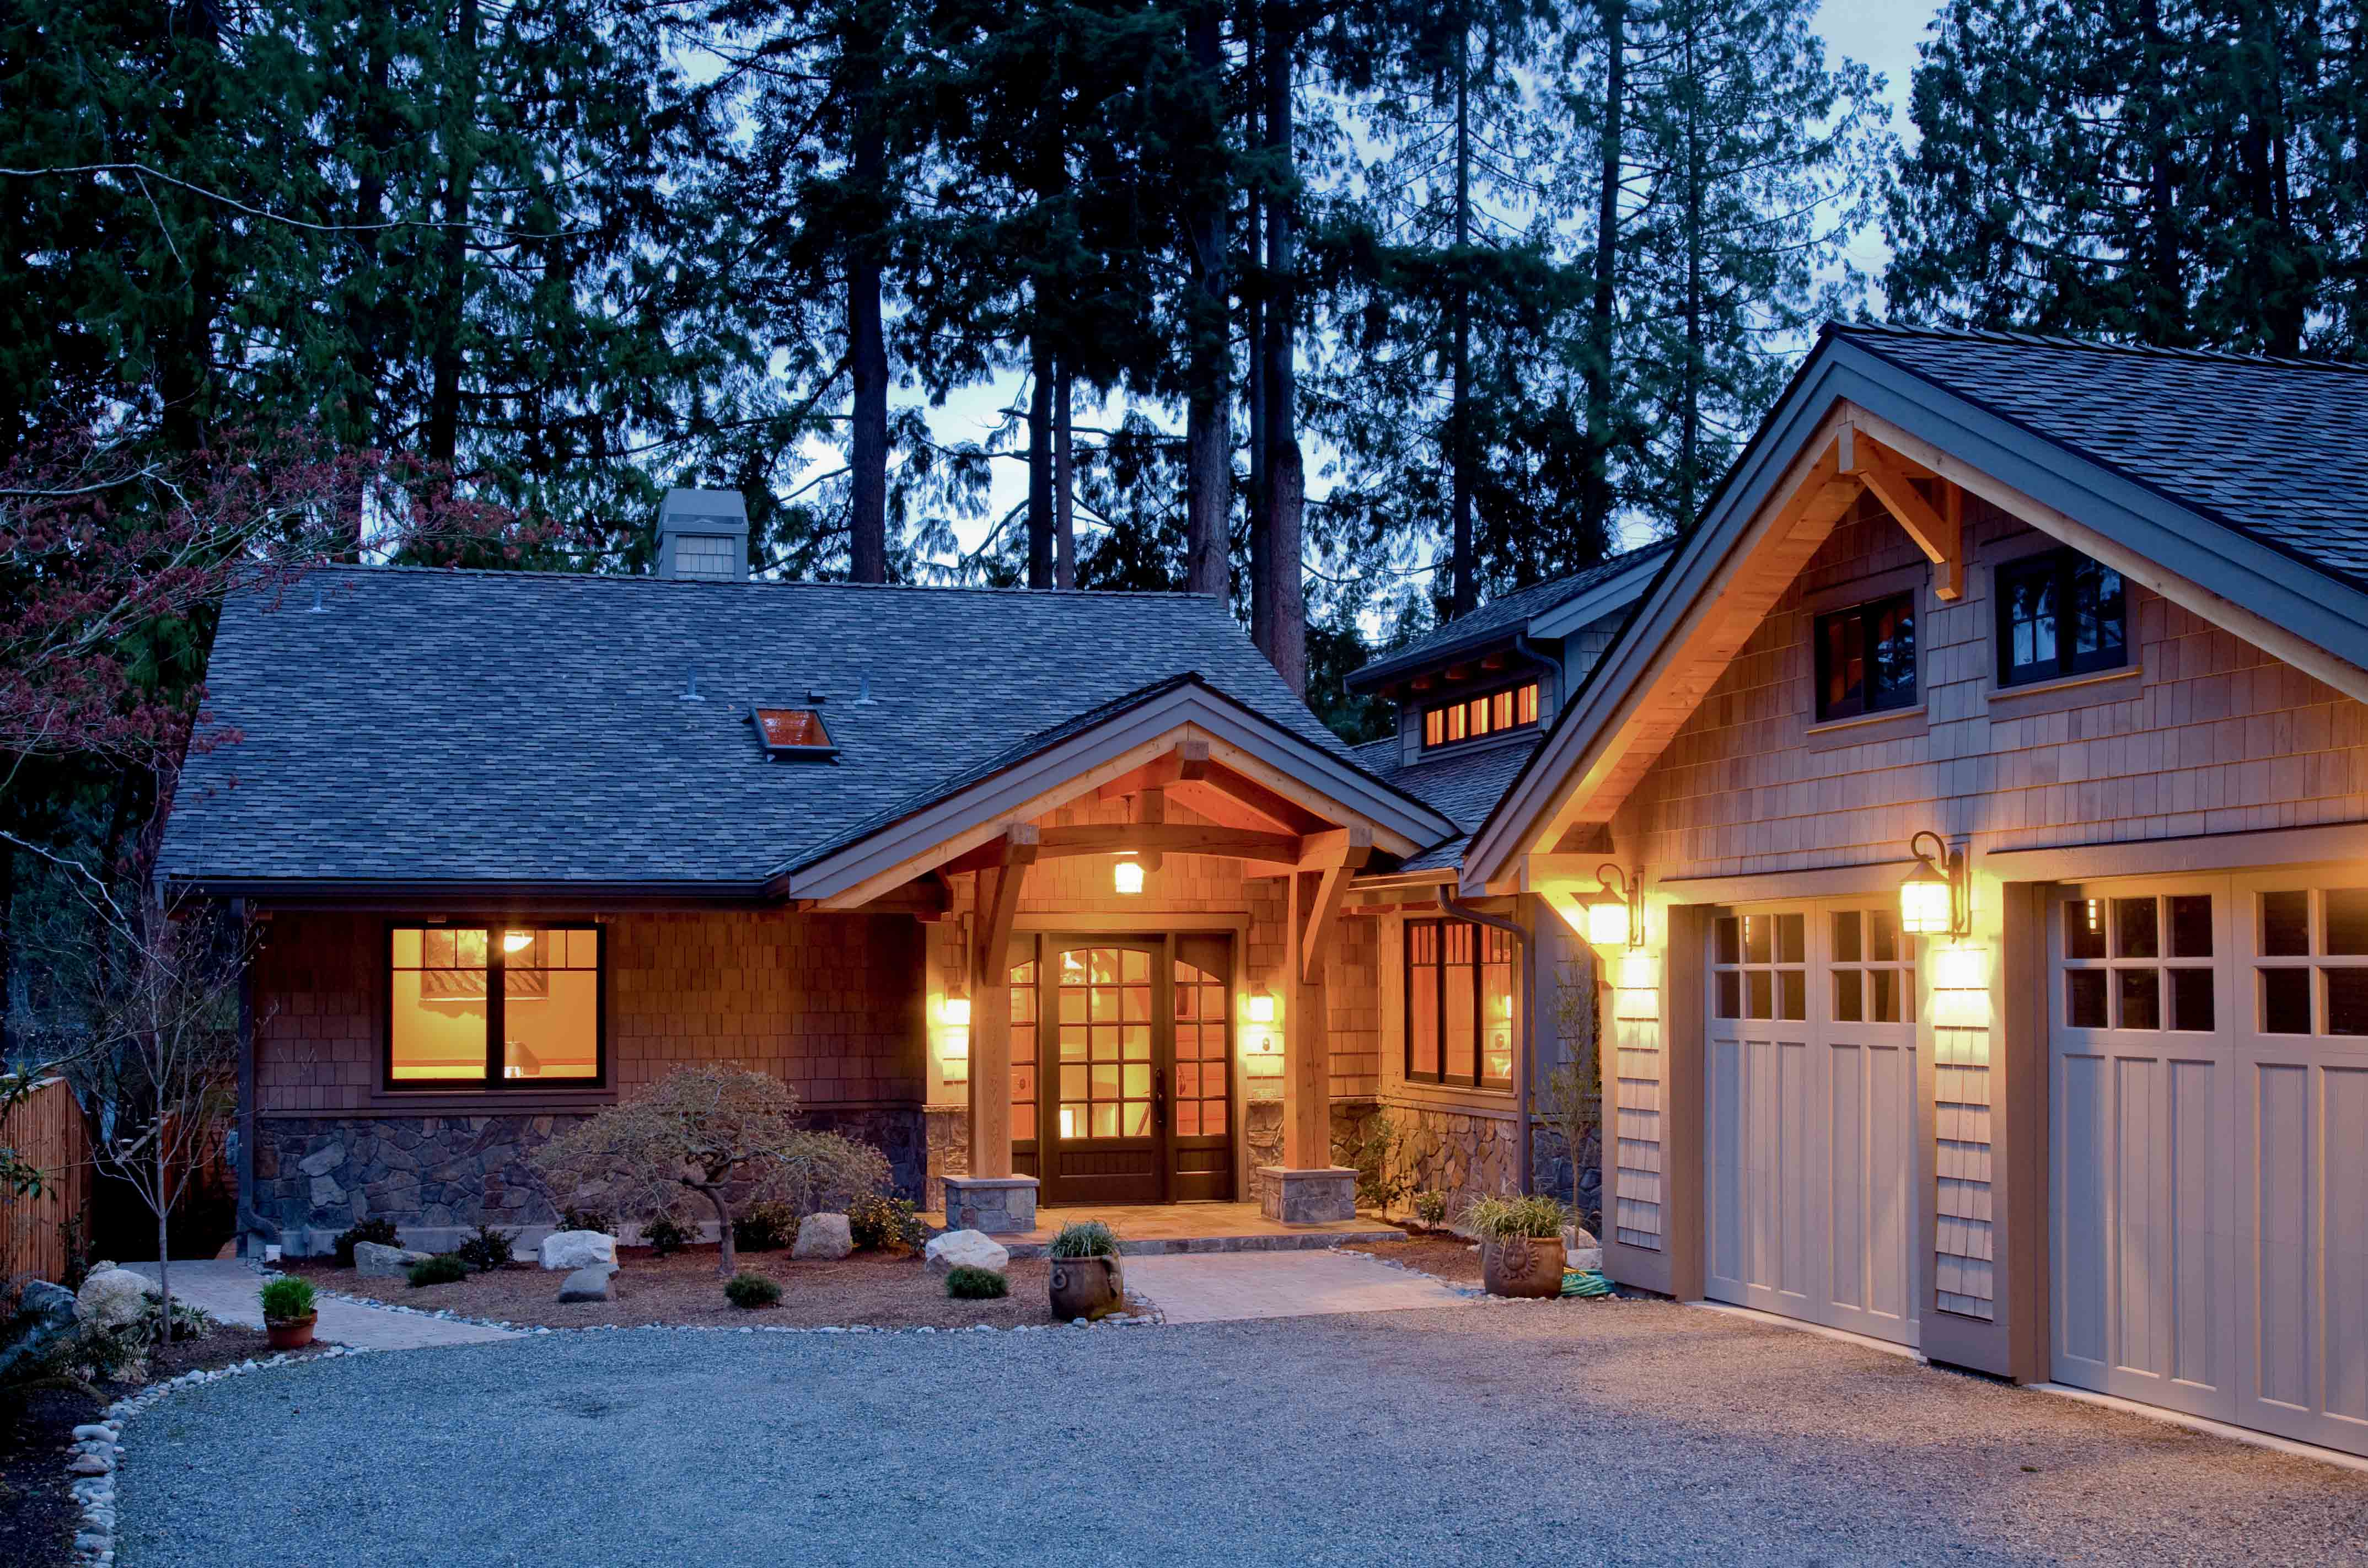 this plus nggallery dish image slideshow picture lake exterior description private is the edited gallery cottages cottage beaver window rmv suite